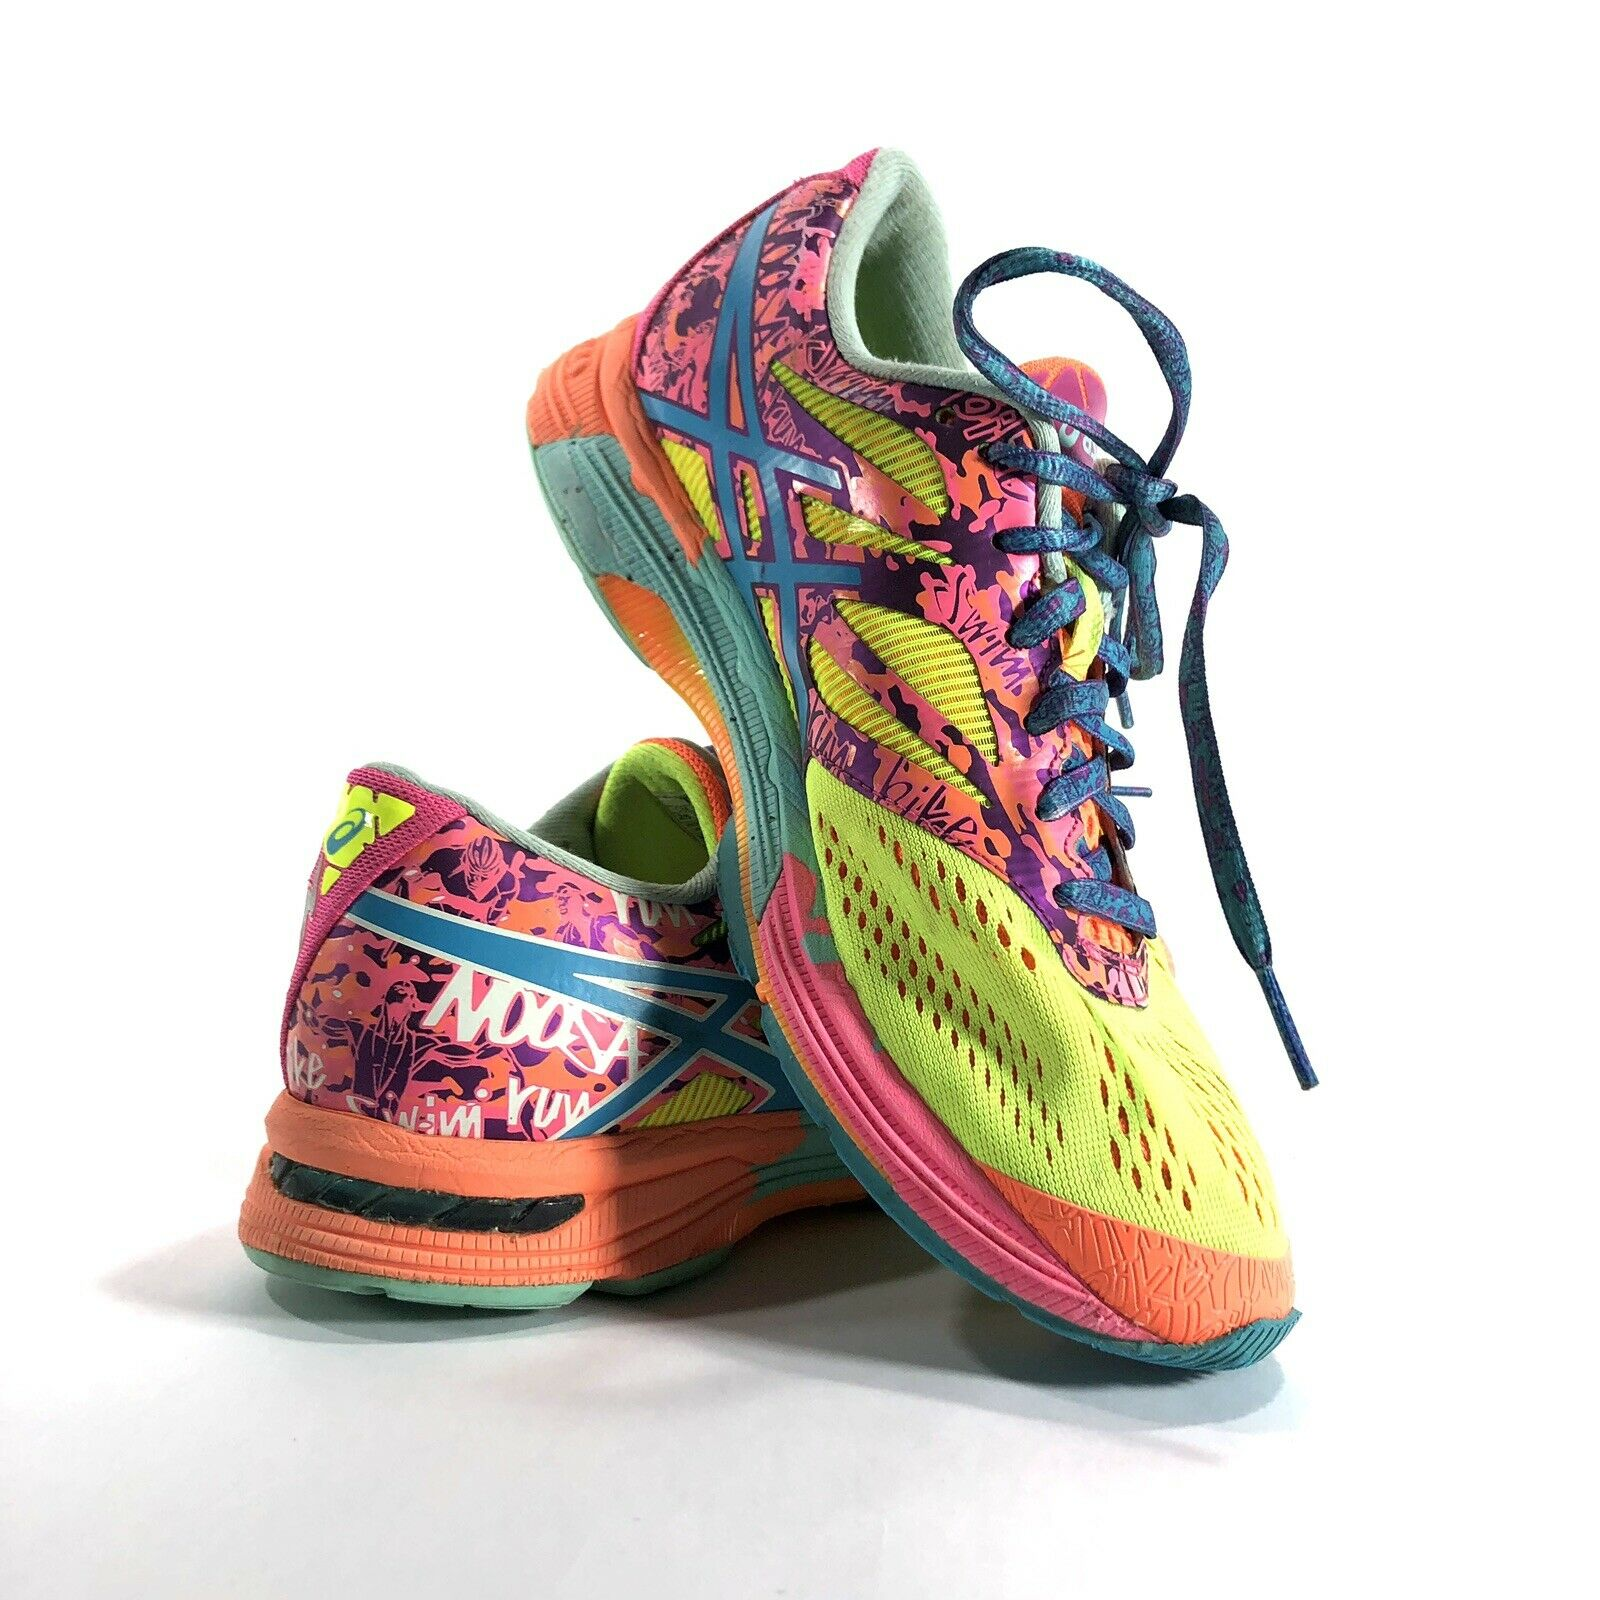 Asics Gel Noosa Tri 10 Running shoes SZ 8 Womens Athletic Sneakers Yellow Pink